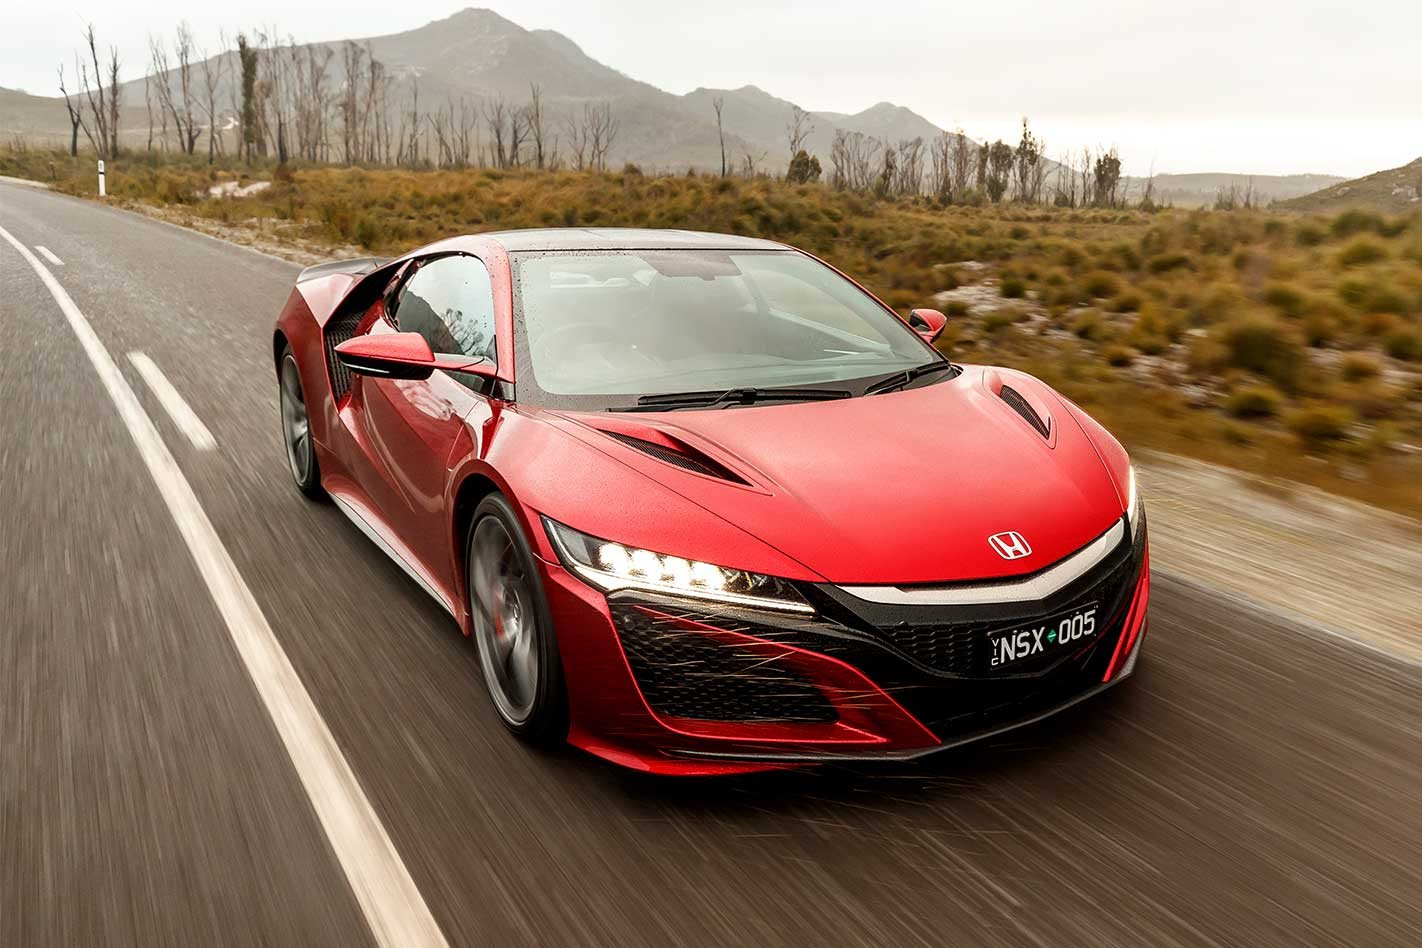 2018 Honda Nsx Performance Review